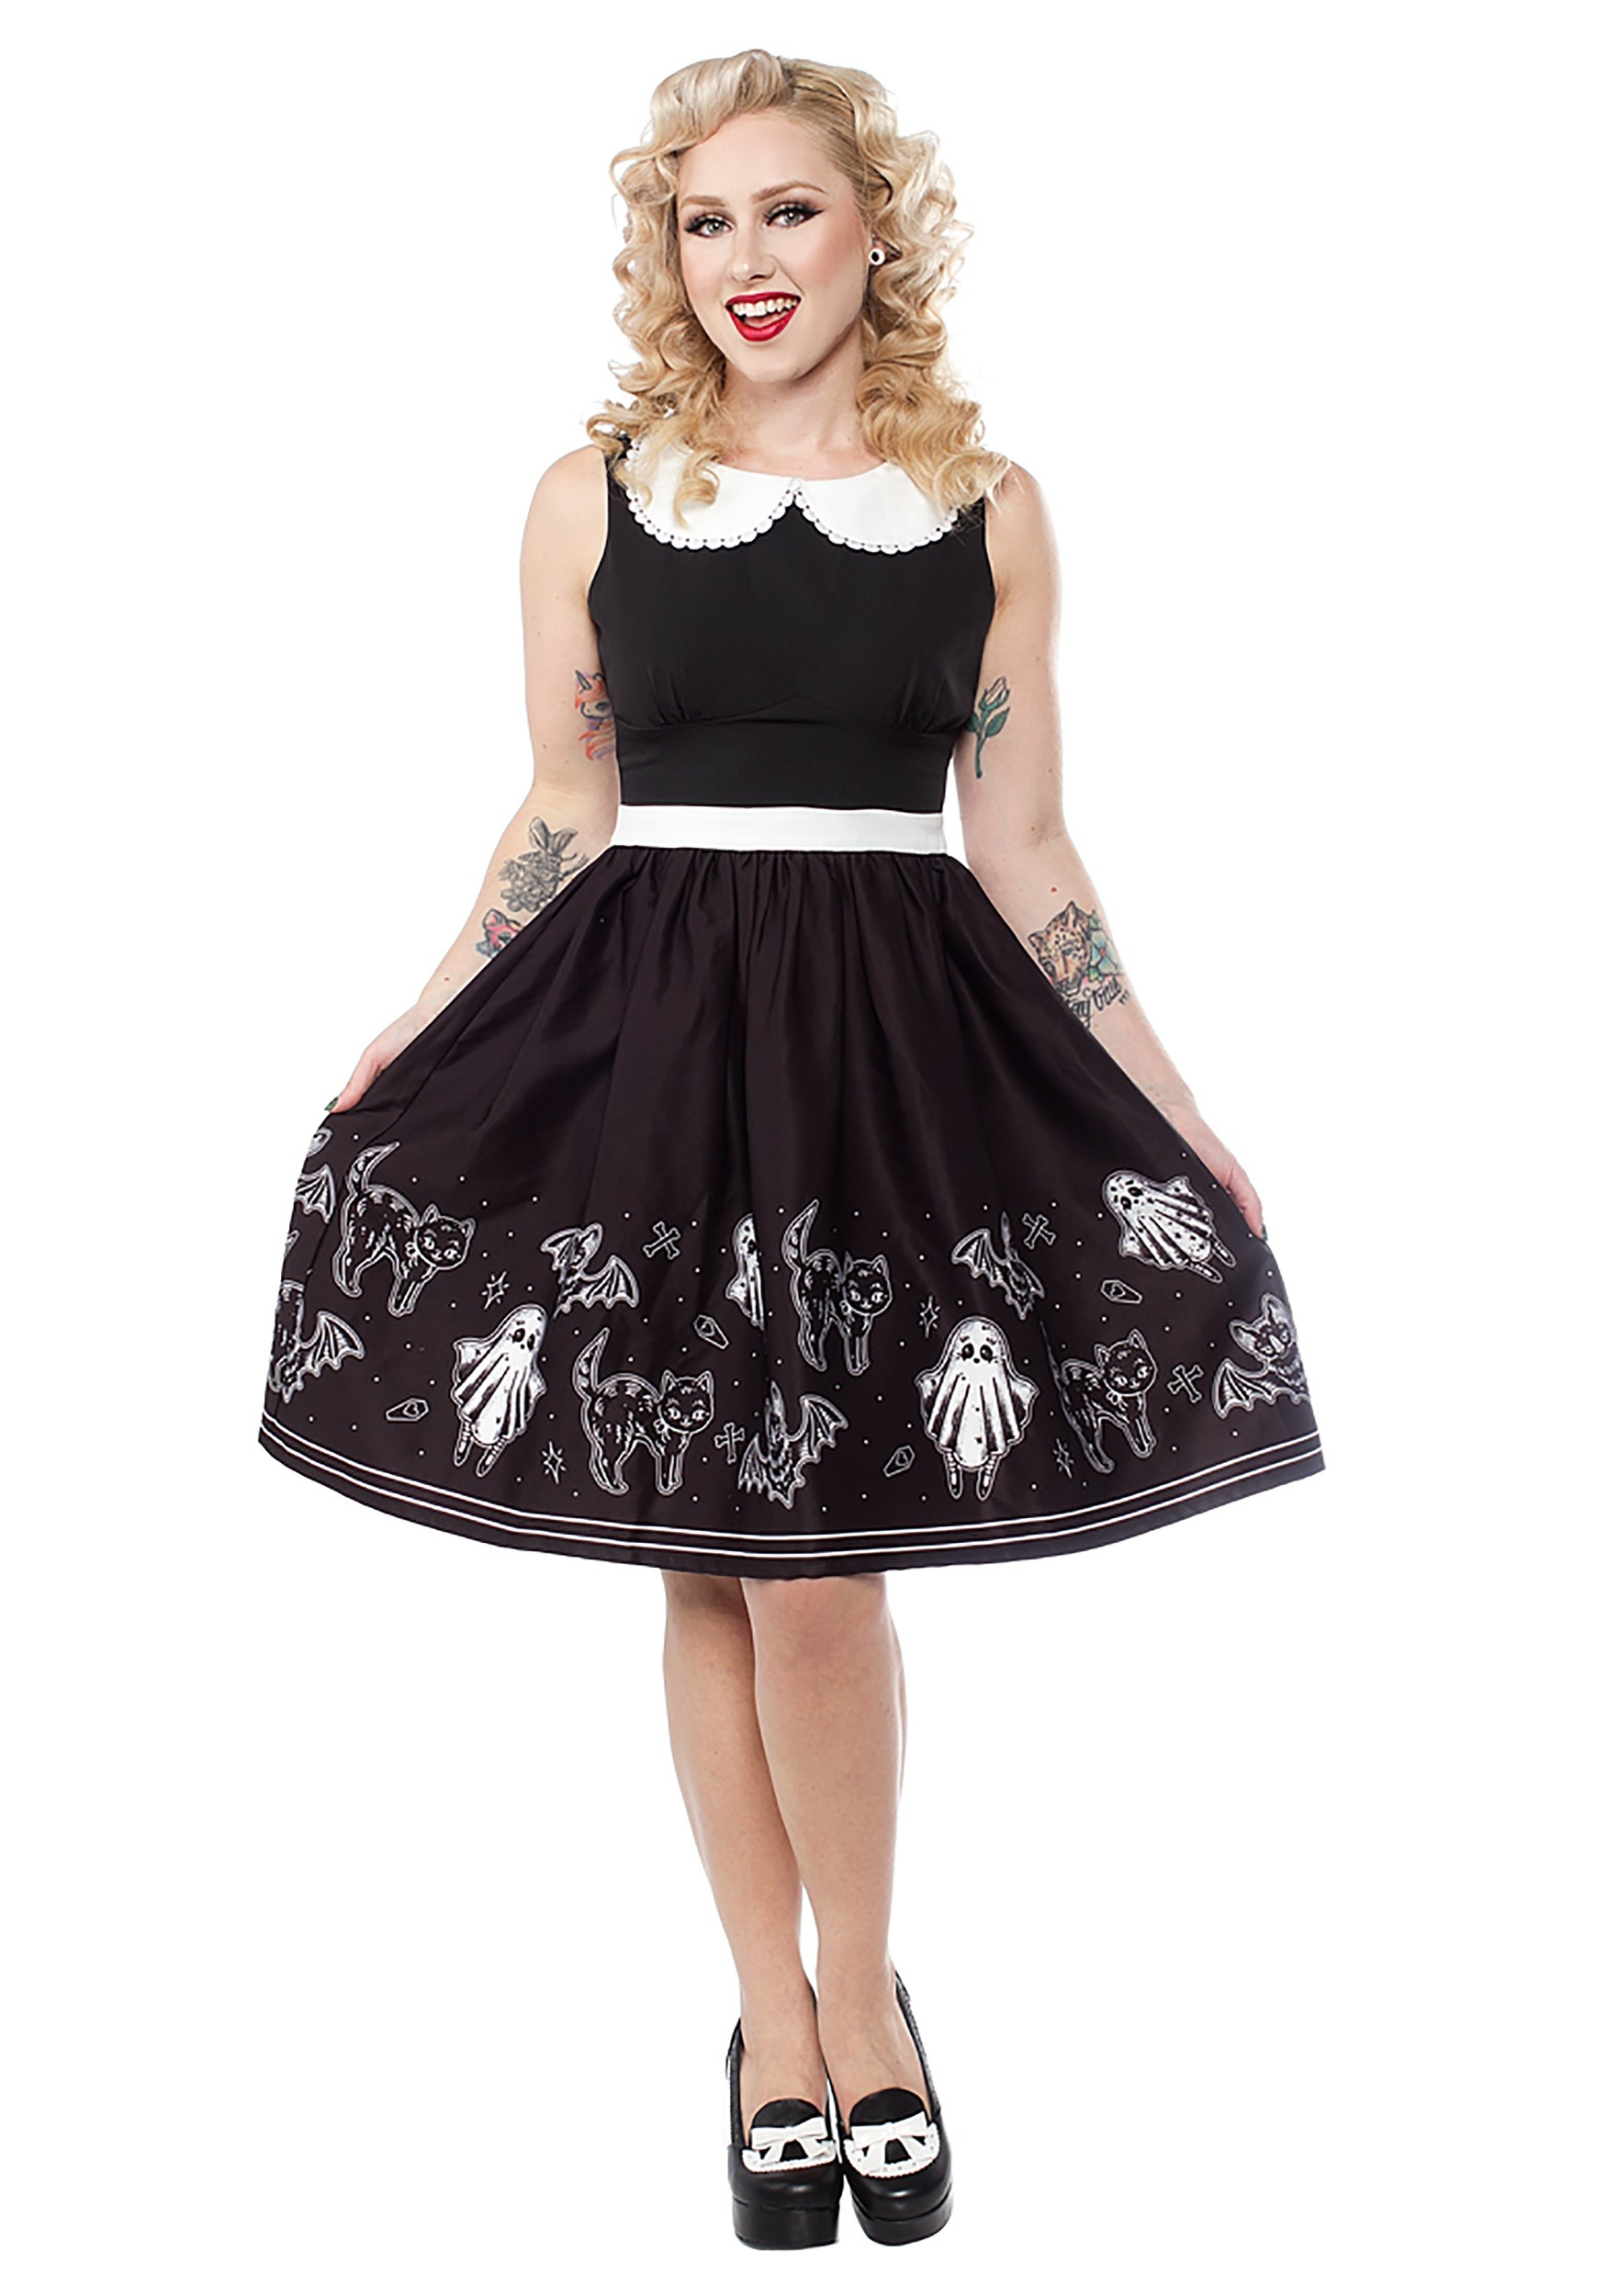 INOpets.com Anything for Pets Parents & Their Pets Sourpuss So Cute Its Spooky Women's Halloween Shift Dress